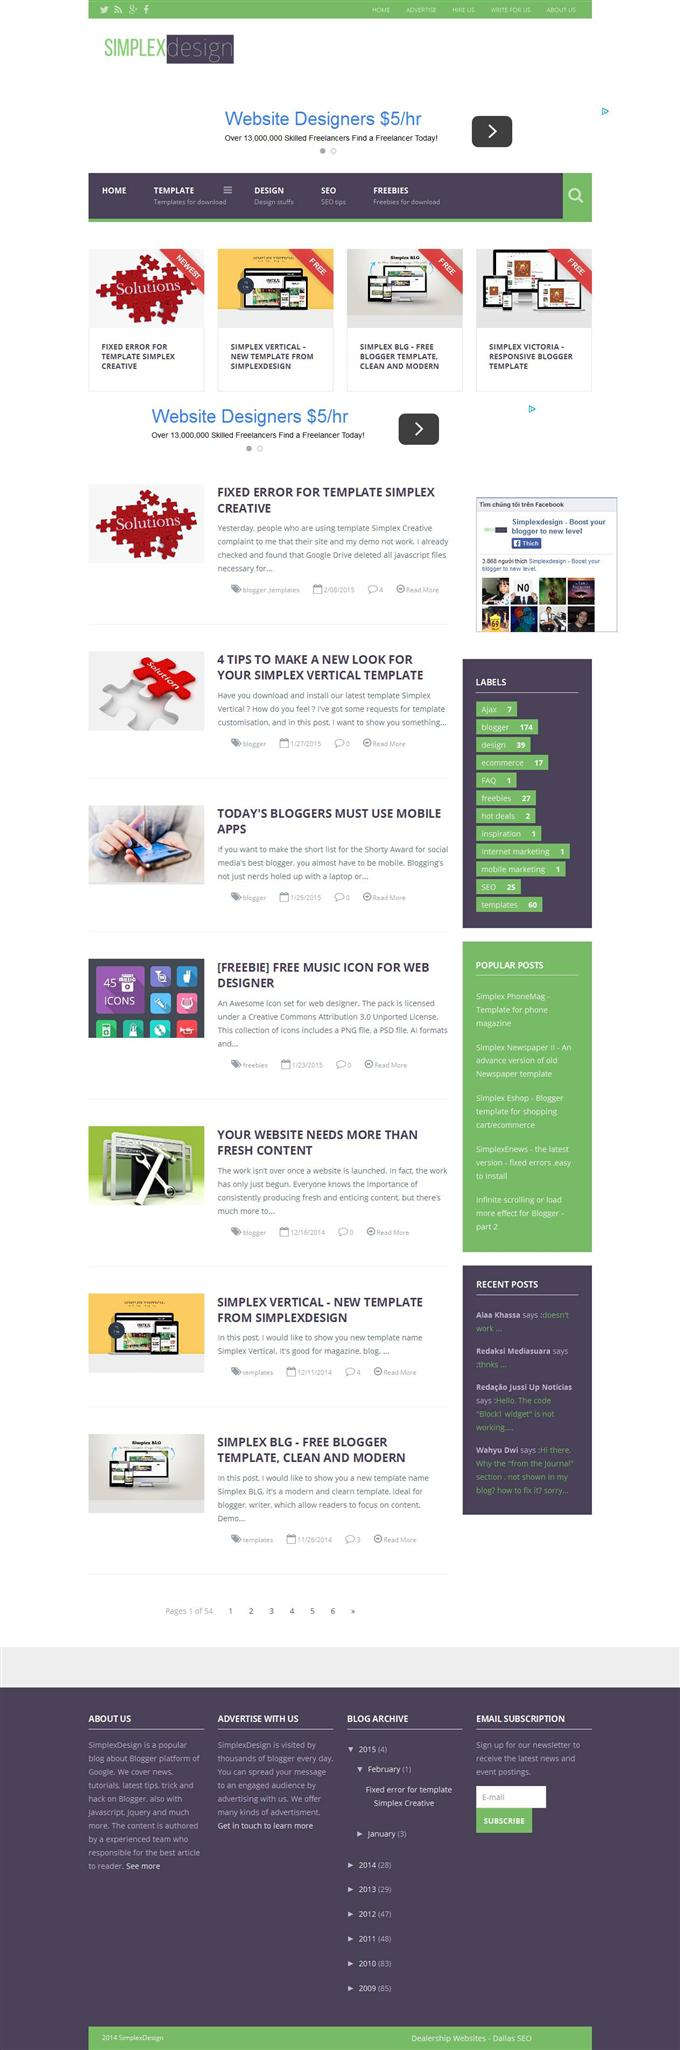 Simplex-Eshop-Blogger-template-for-shopping-cart-ecommerce-Custom - 60+ Top Free Ecommerce Blogger Templates [year]